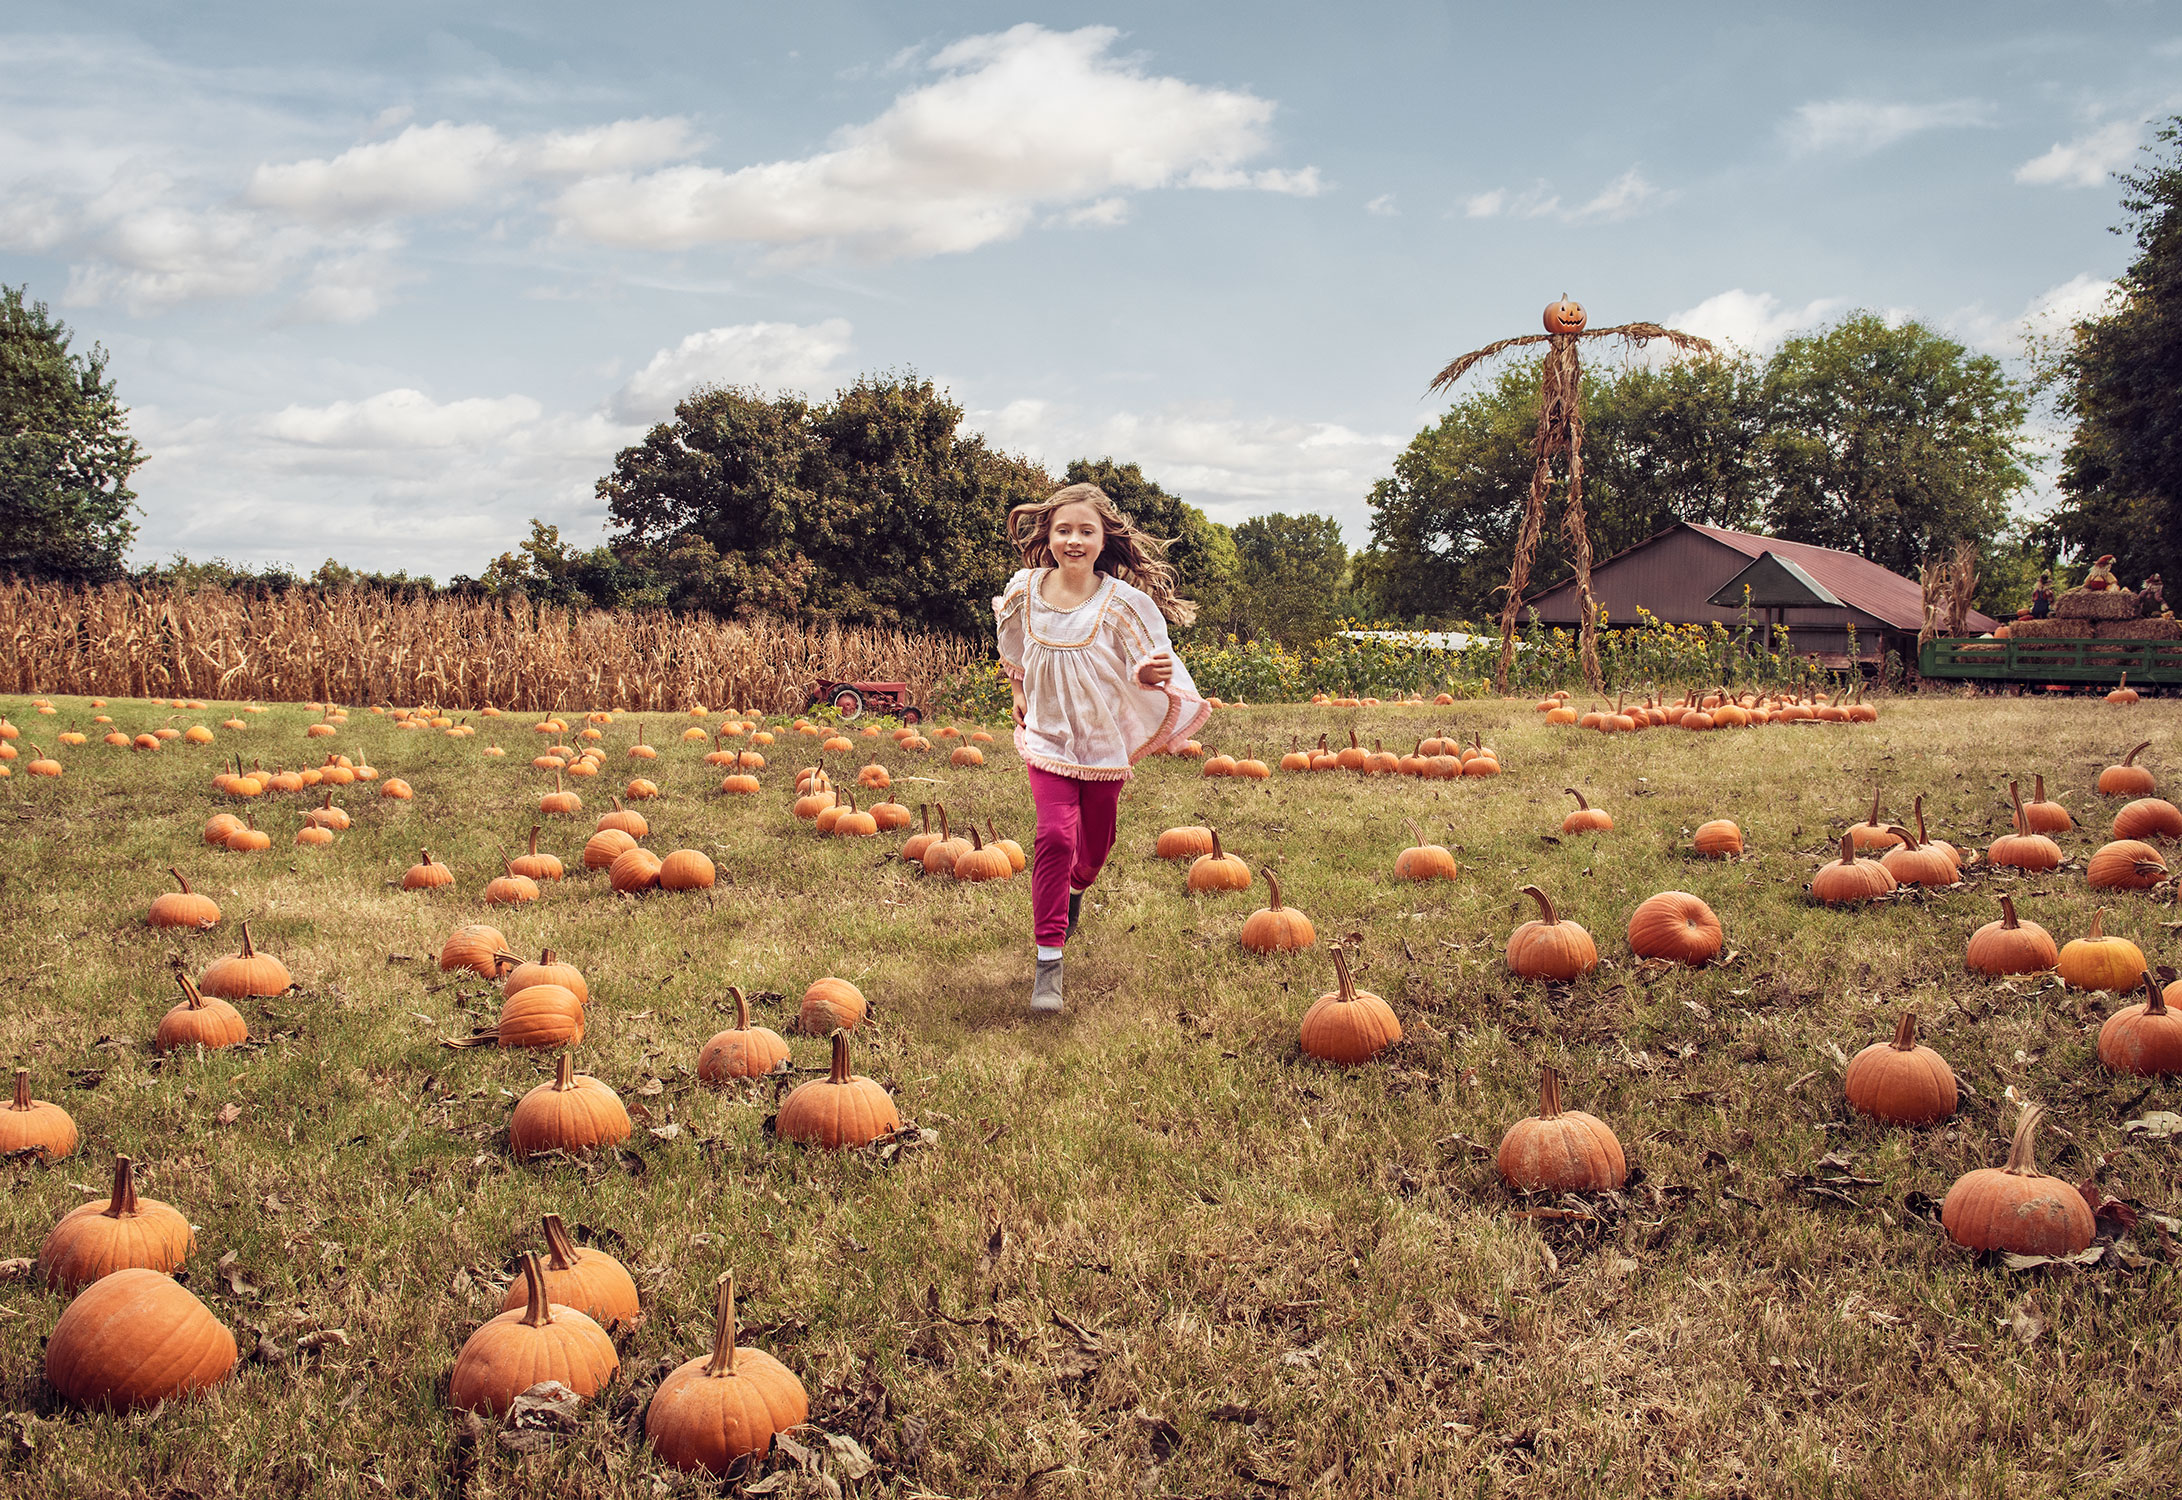 PumpkinPatch2Web